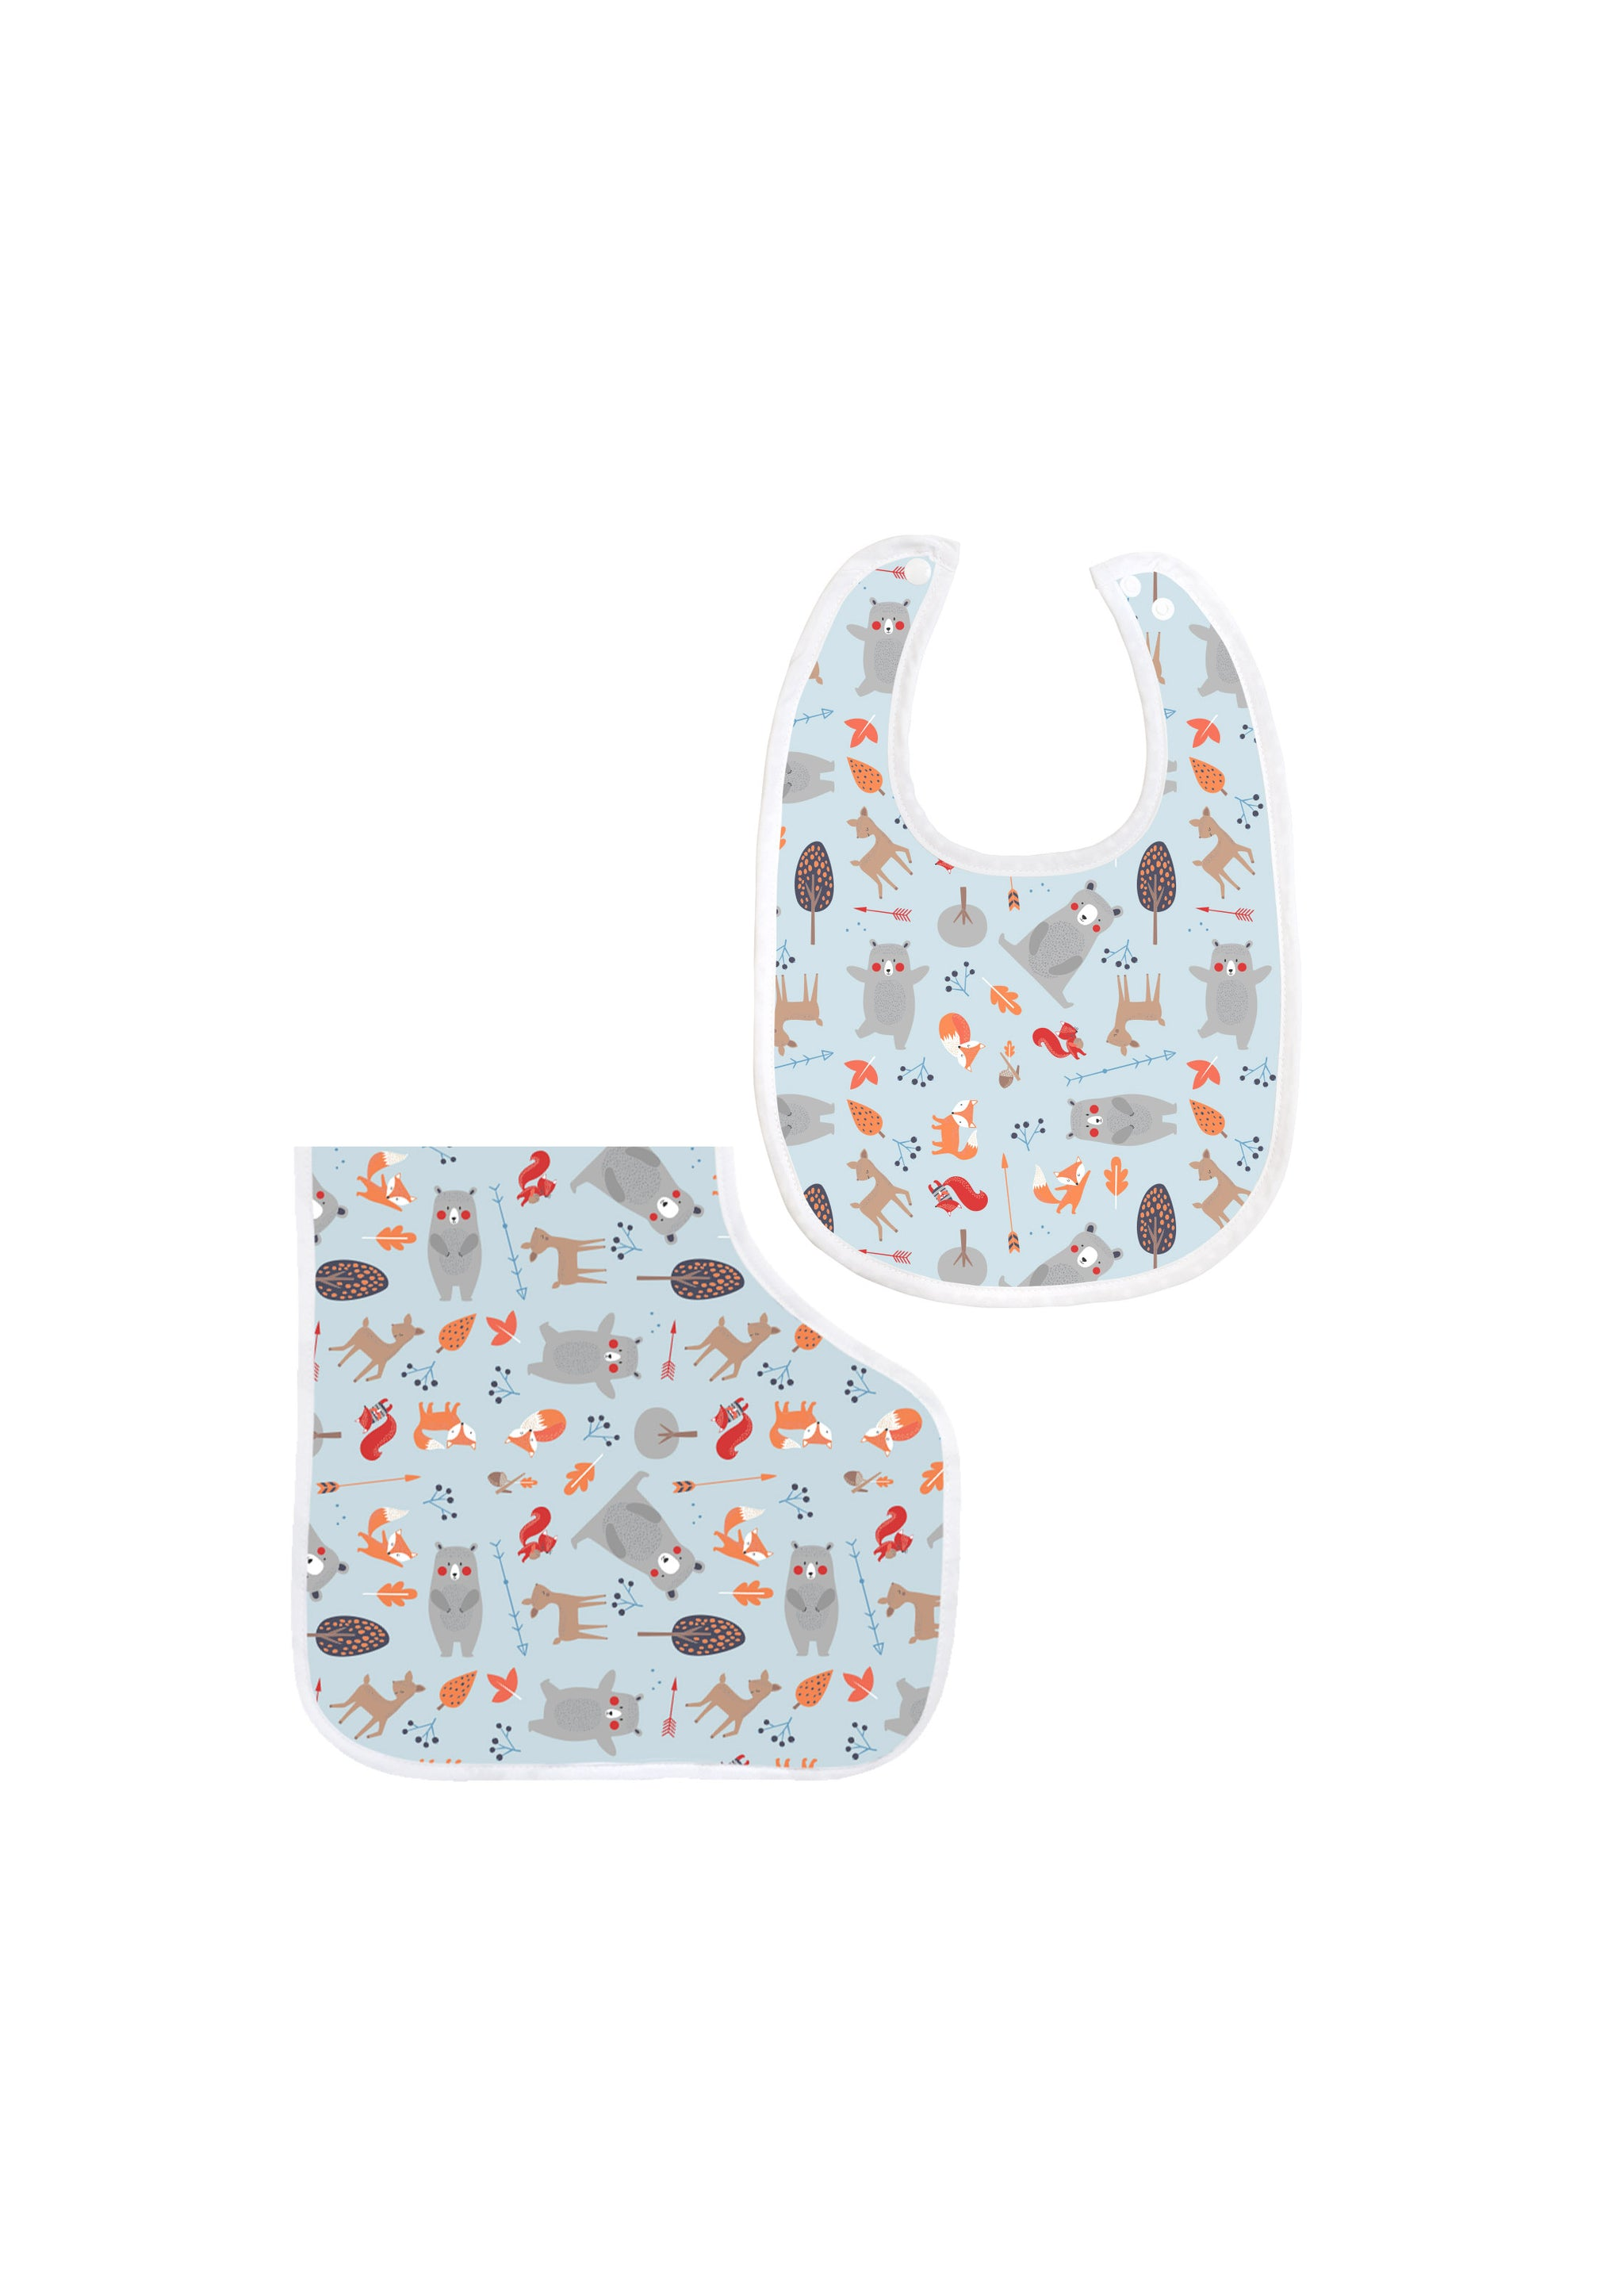 Bamboo Bib and Burp Cloths Sets